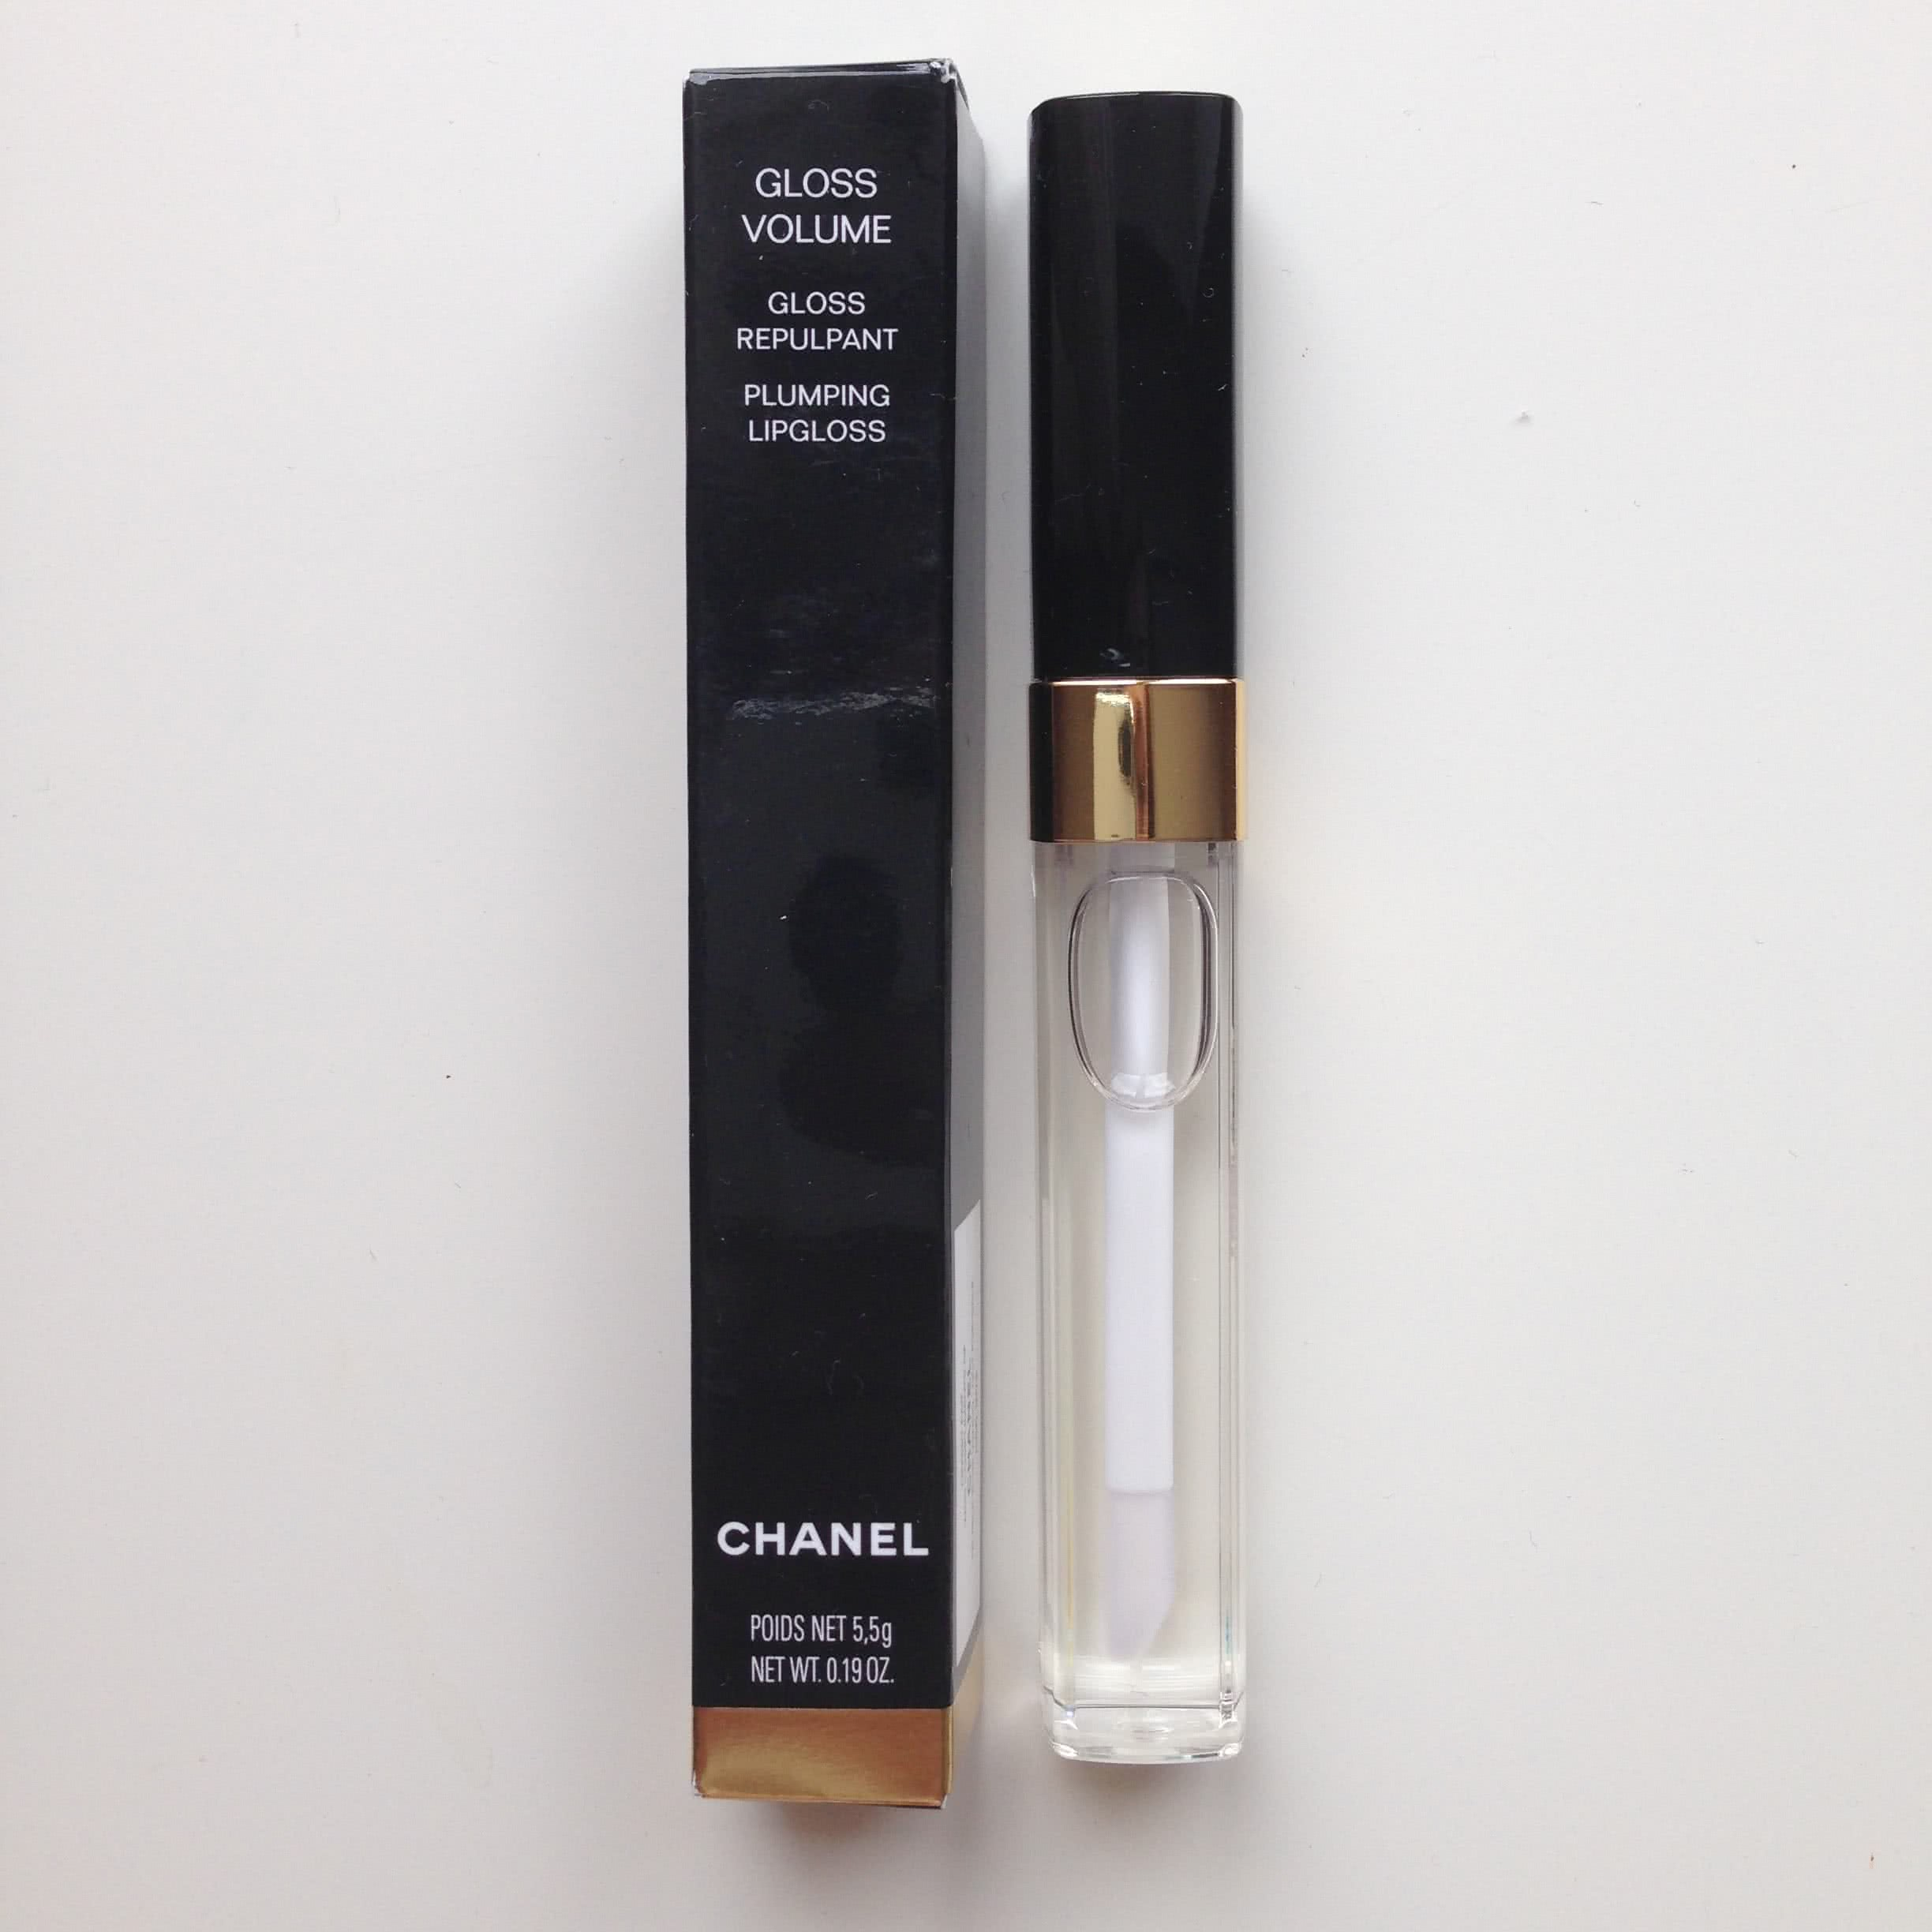 Chanel GLOSS VOLUME